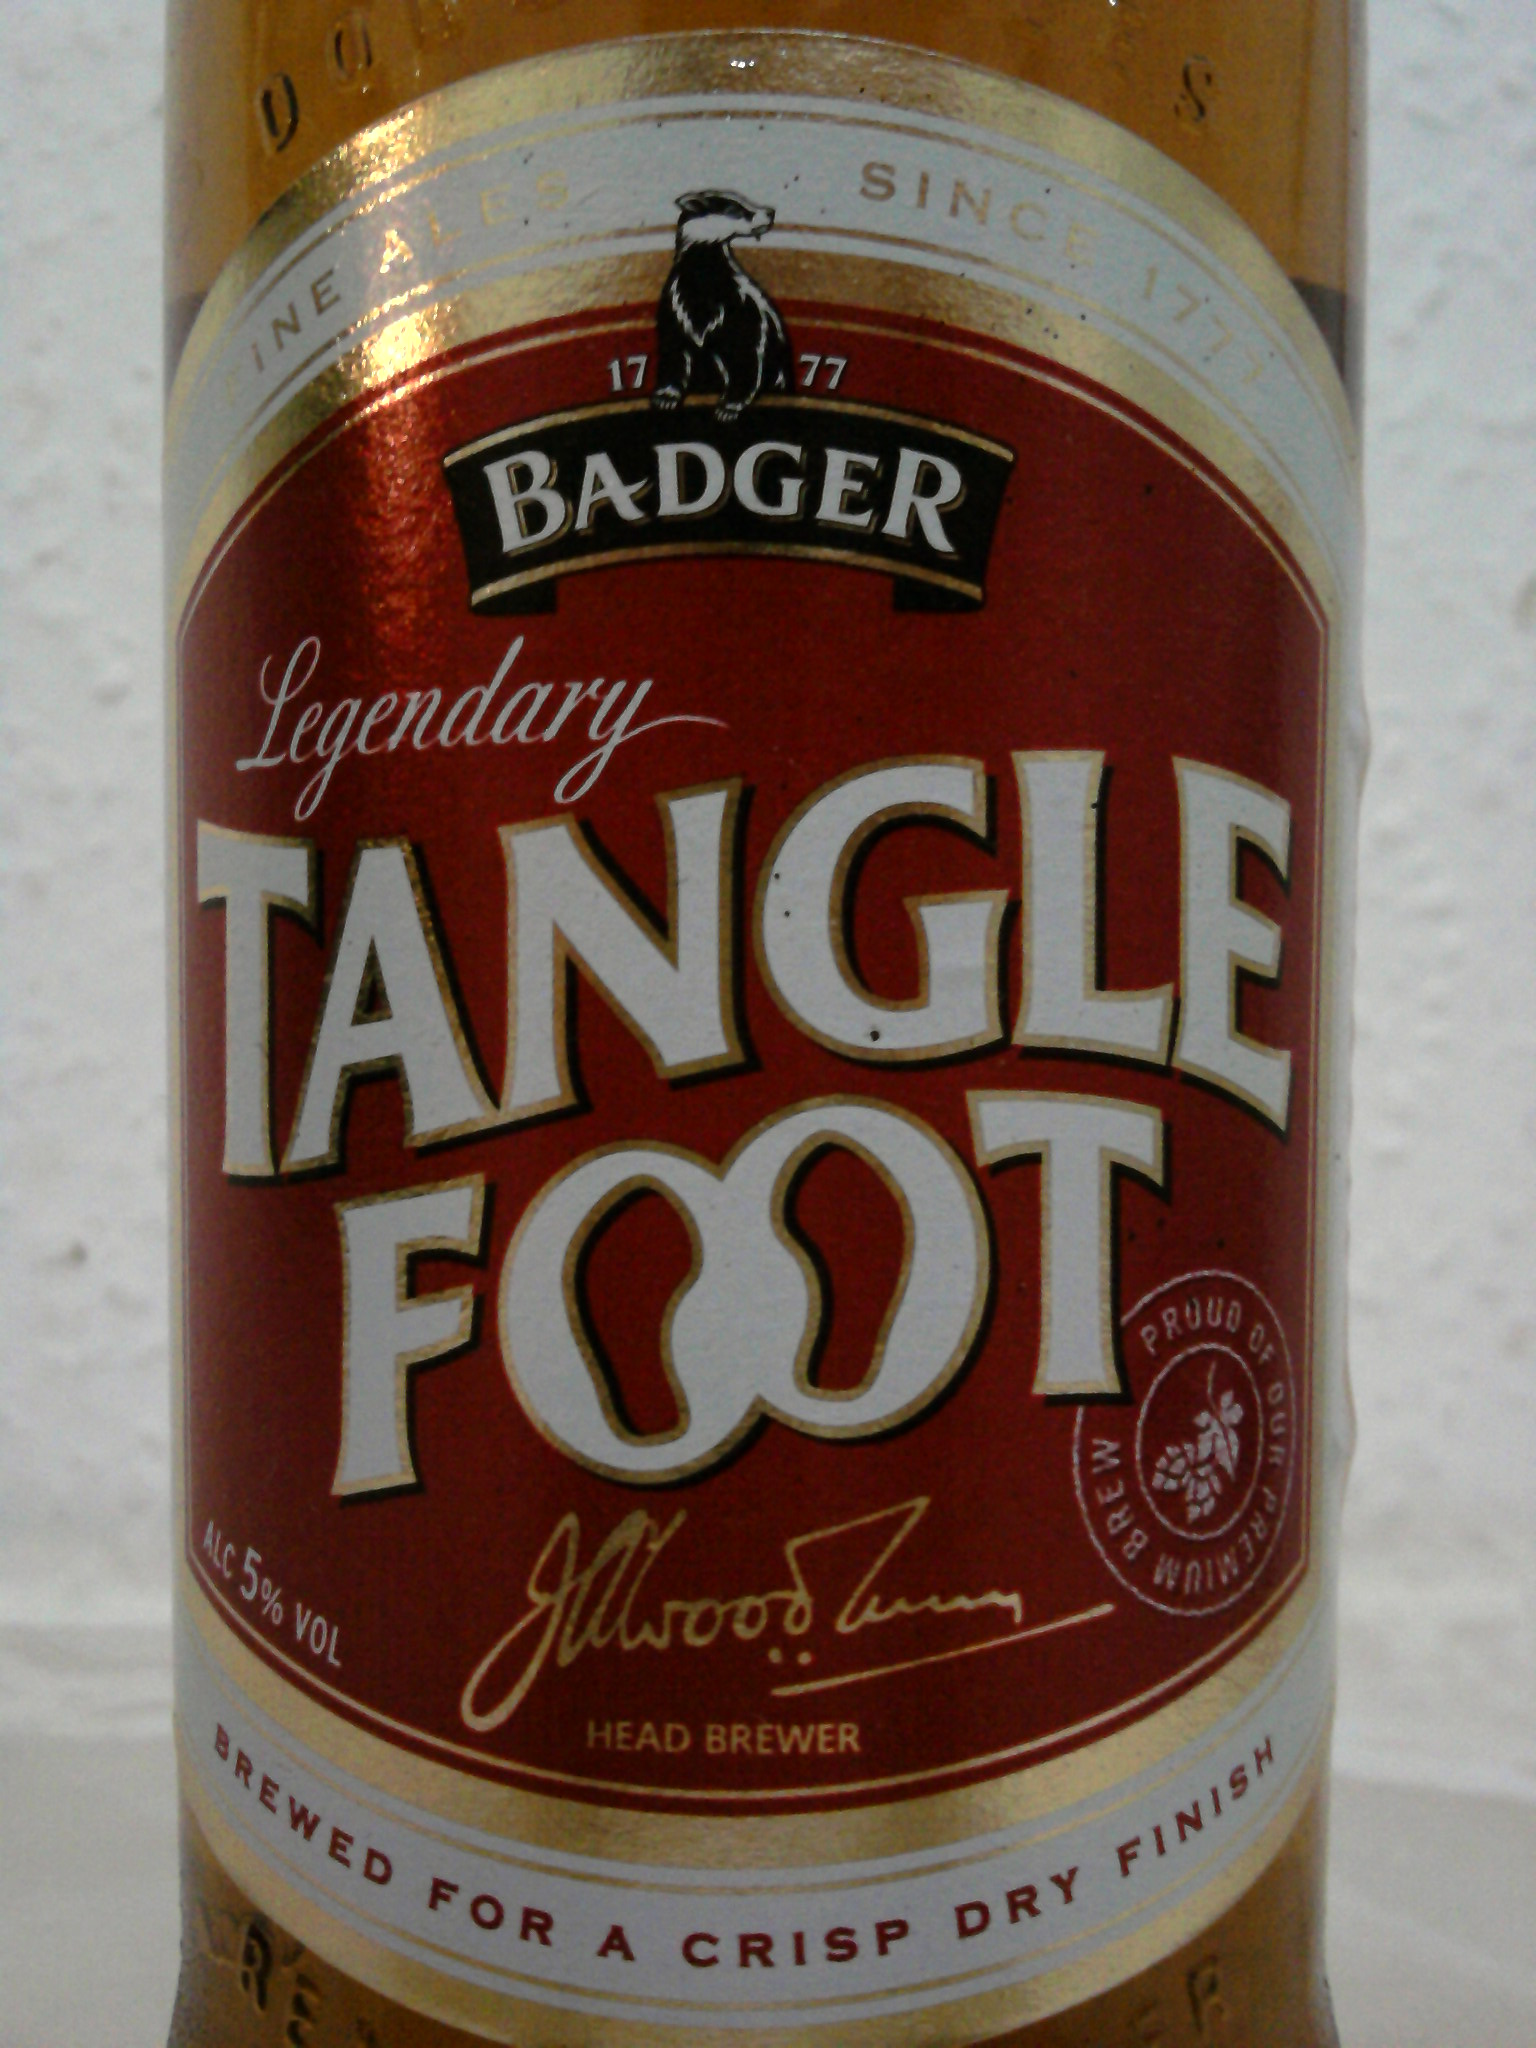 Hall & Woodhouse Badger Tangle Foot front label